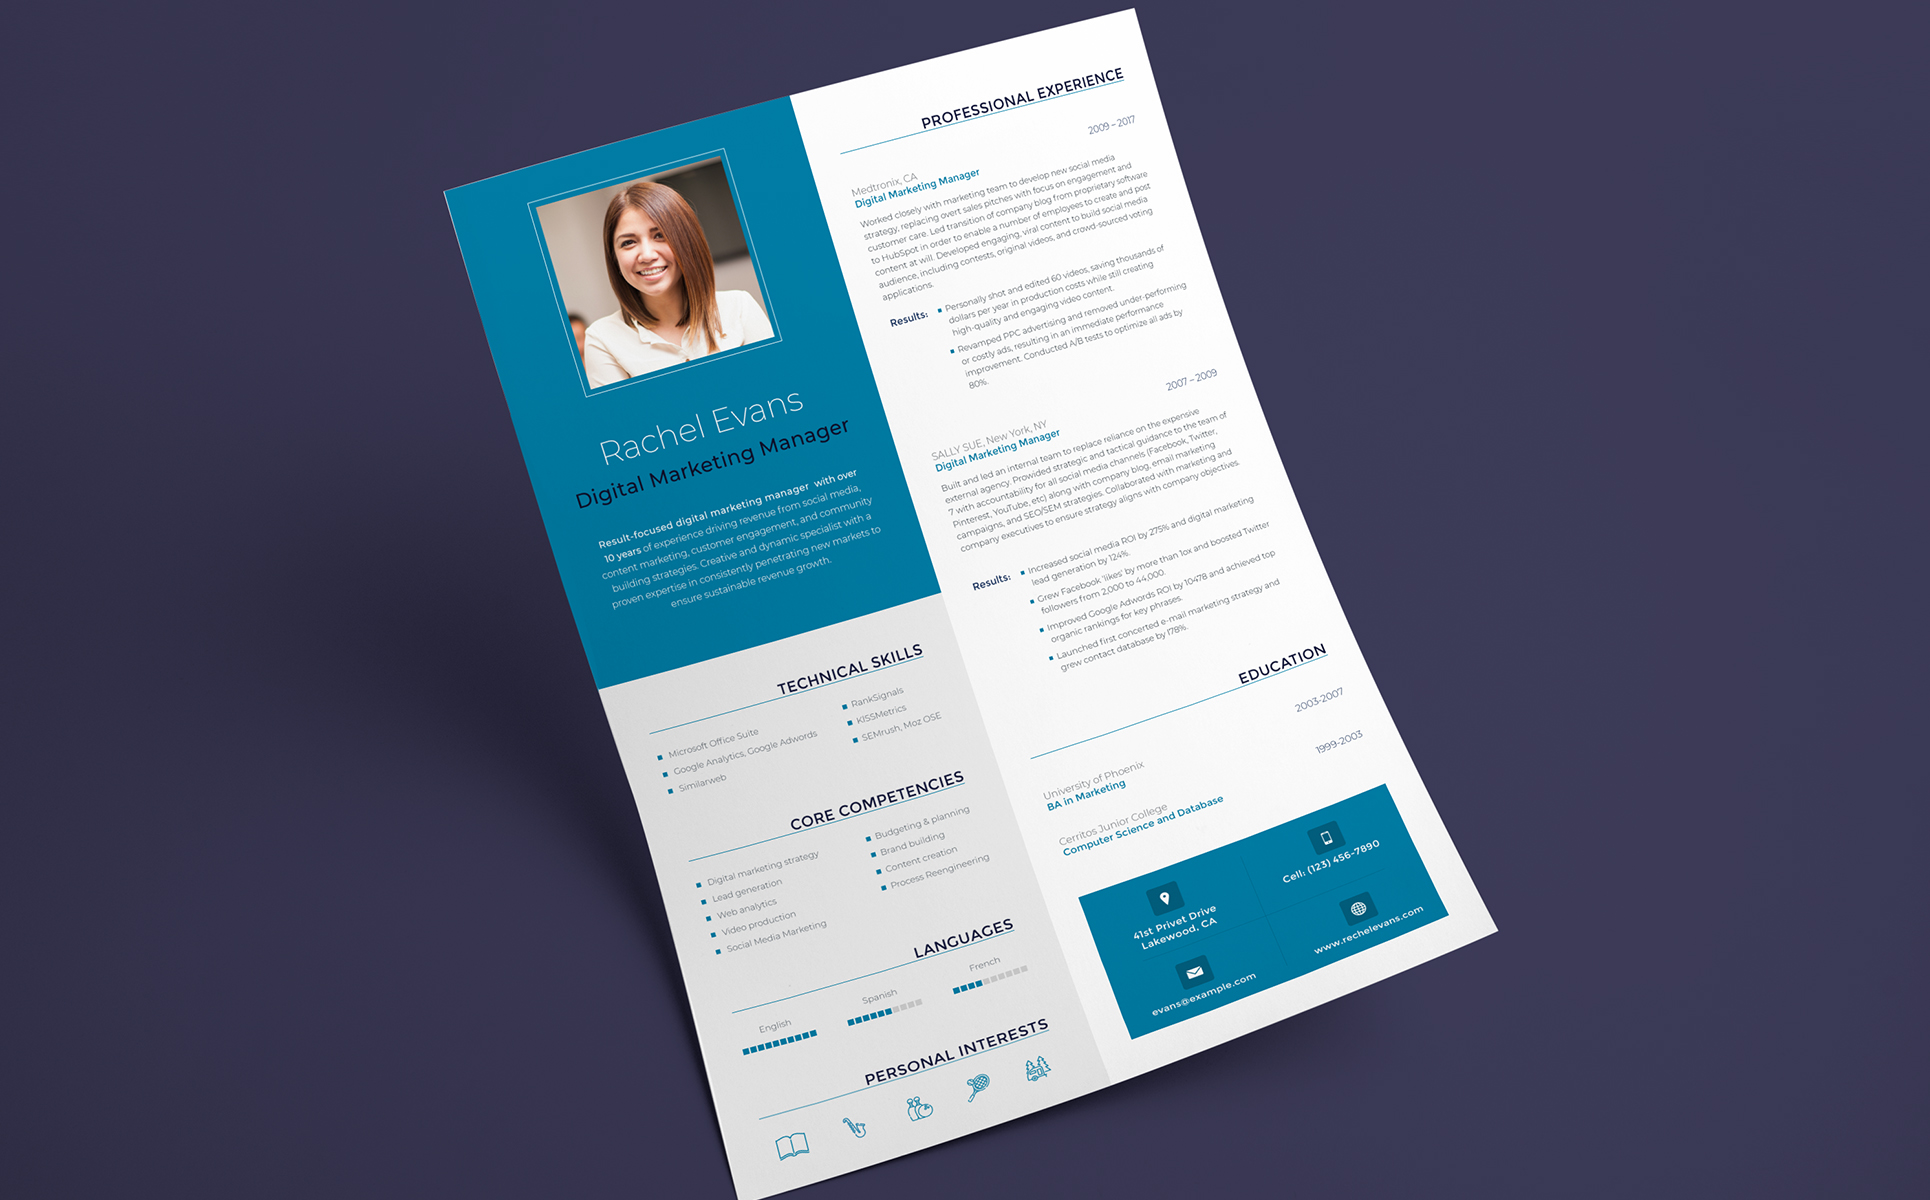 Rachel Evans   Digital Marketing Manager Resume Template Big Screenshot